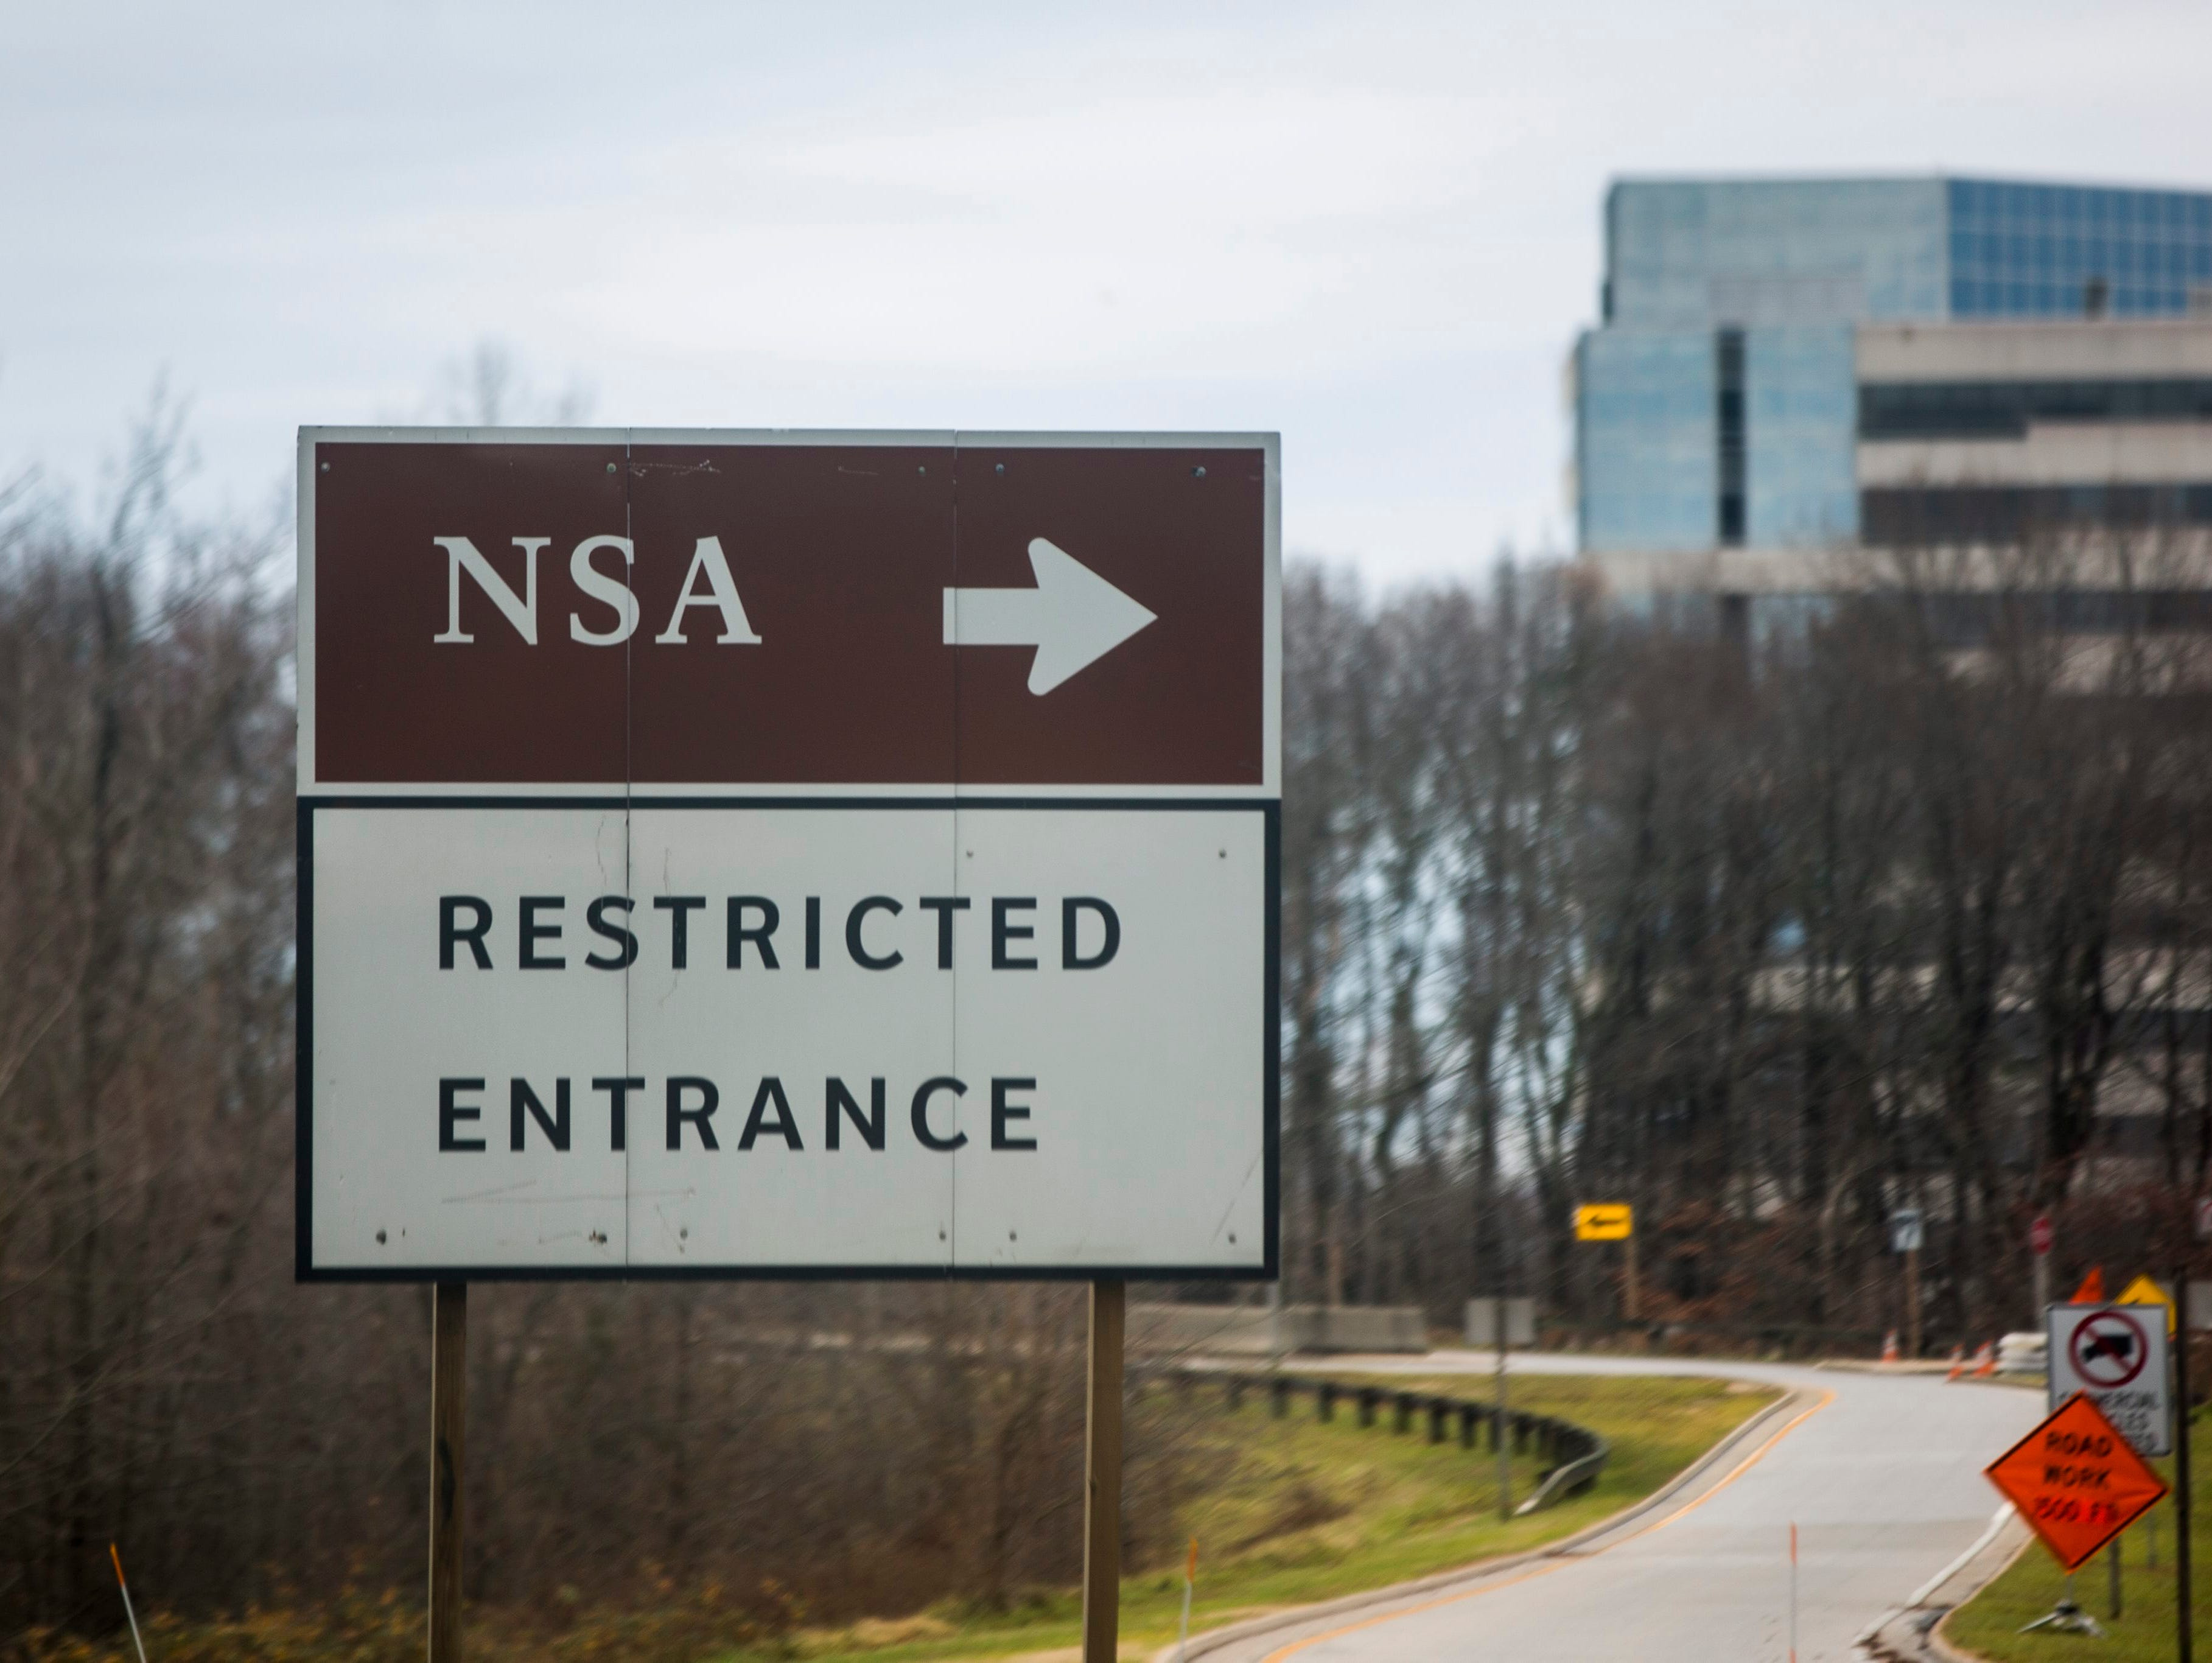 A road sign for the headquarters of the National Security Administration (NSA) is seen in Fort Meade, Maryland, USA, 22 December 2013.